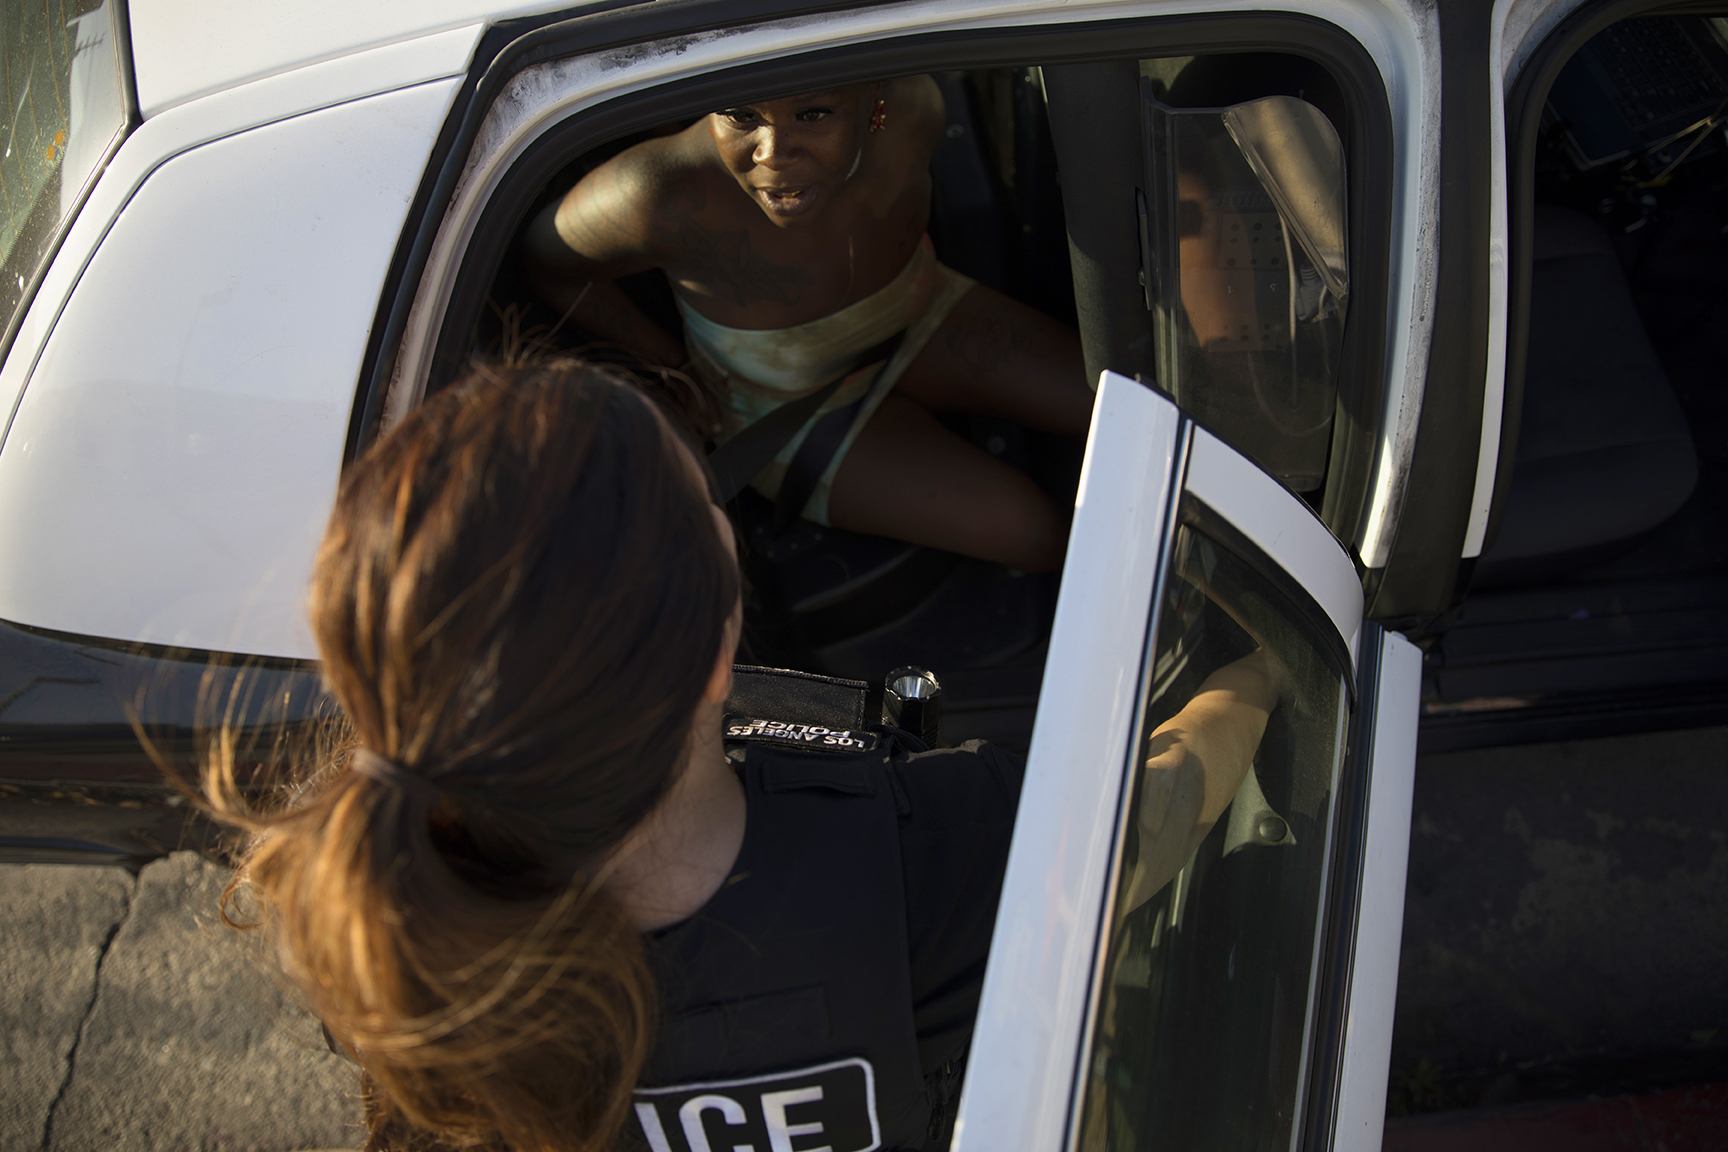 May 22, 2017: A woman arrested for prostitution, center top, speaks to an officer from the Los Angeles Police Department's vice squad in the southern area of Los Angeles, California. The woman was arrested for soliciting an undercover police officer for the purpose of prostitution, a misdemeanor charge.